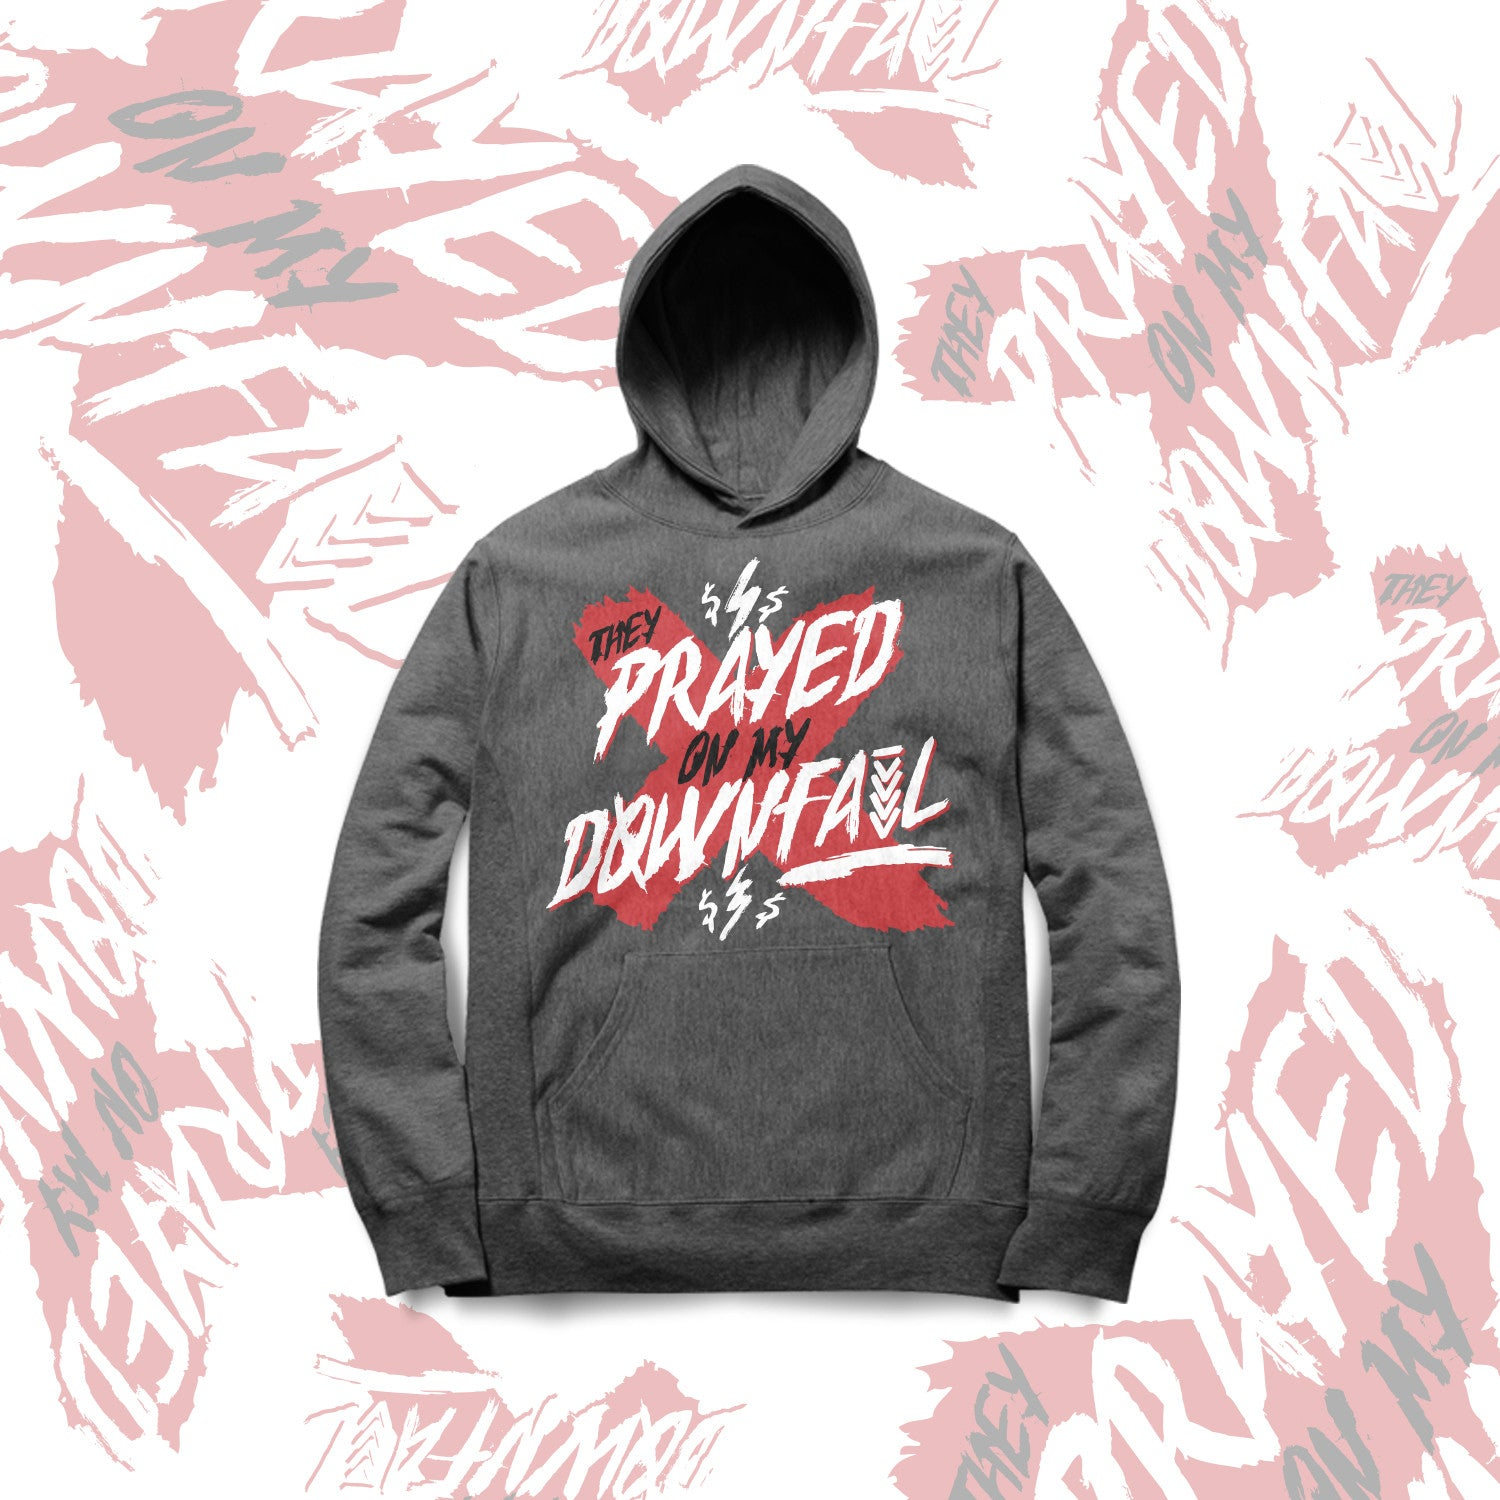 THEY PRAYED ON MY DOWNFALL HOODIE - GREY (UNISEX)